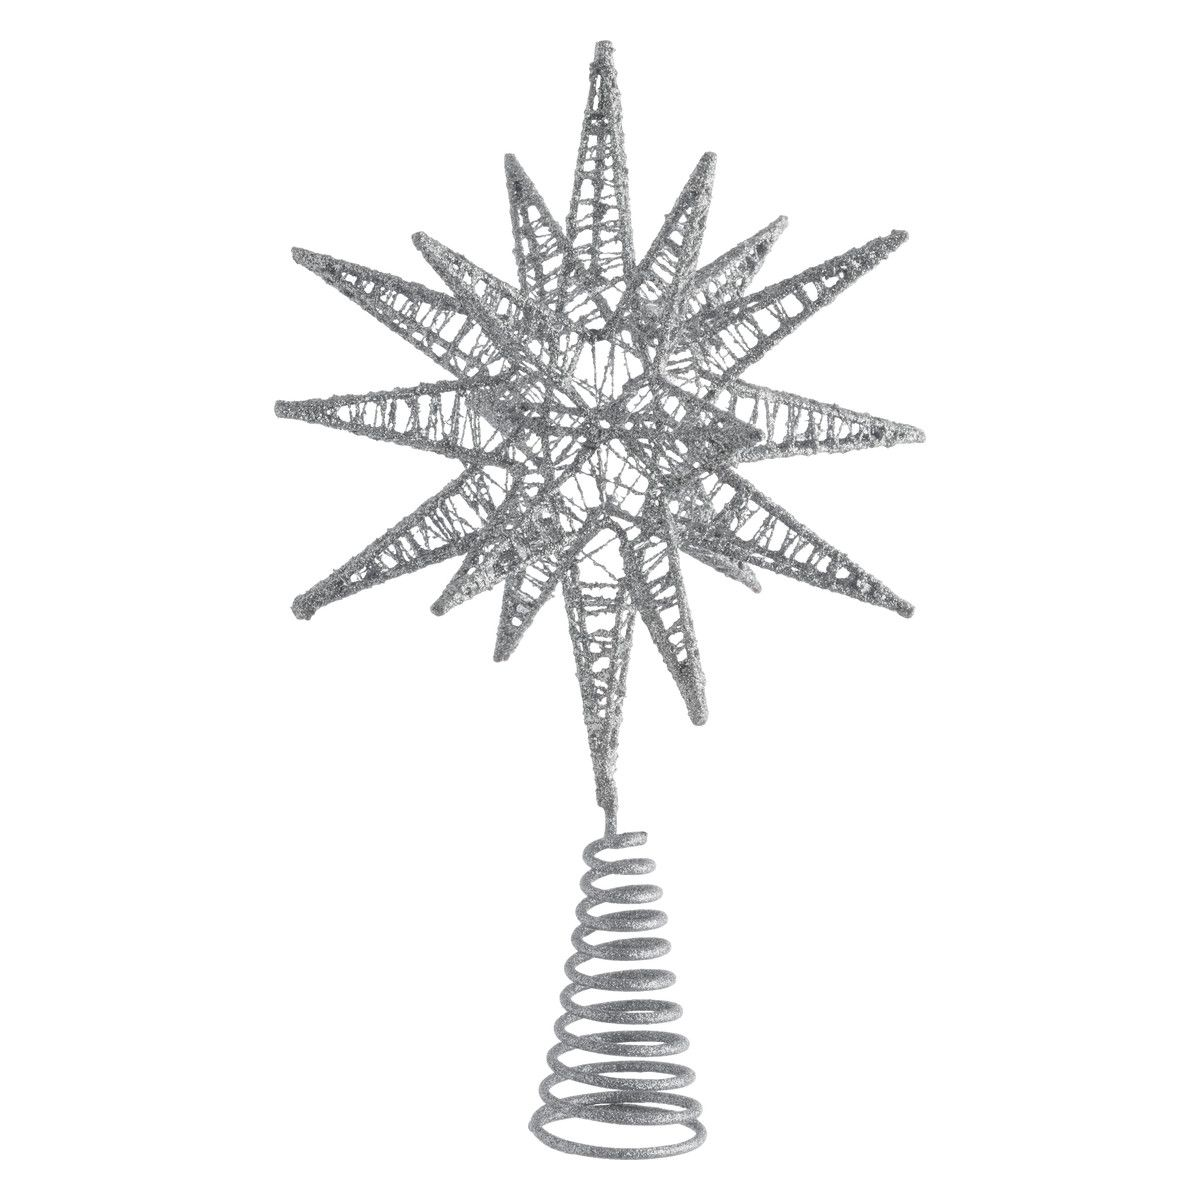 Habitat Christmas Trees: Habitat Polaris Silver Star Christmas Tree Topper (30 X